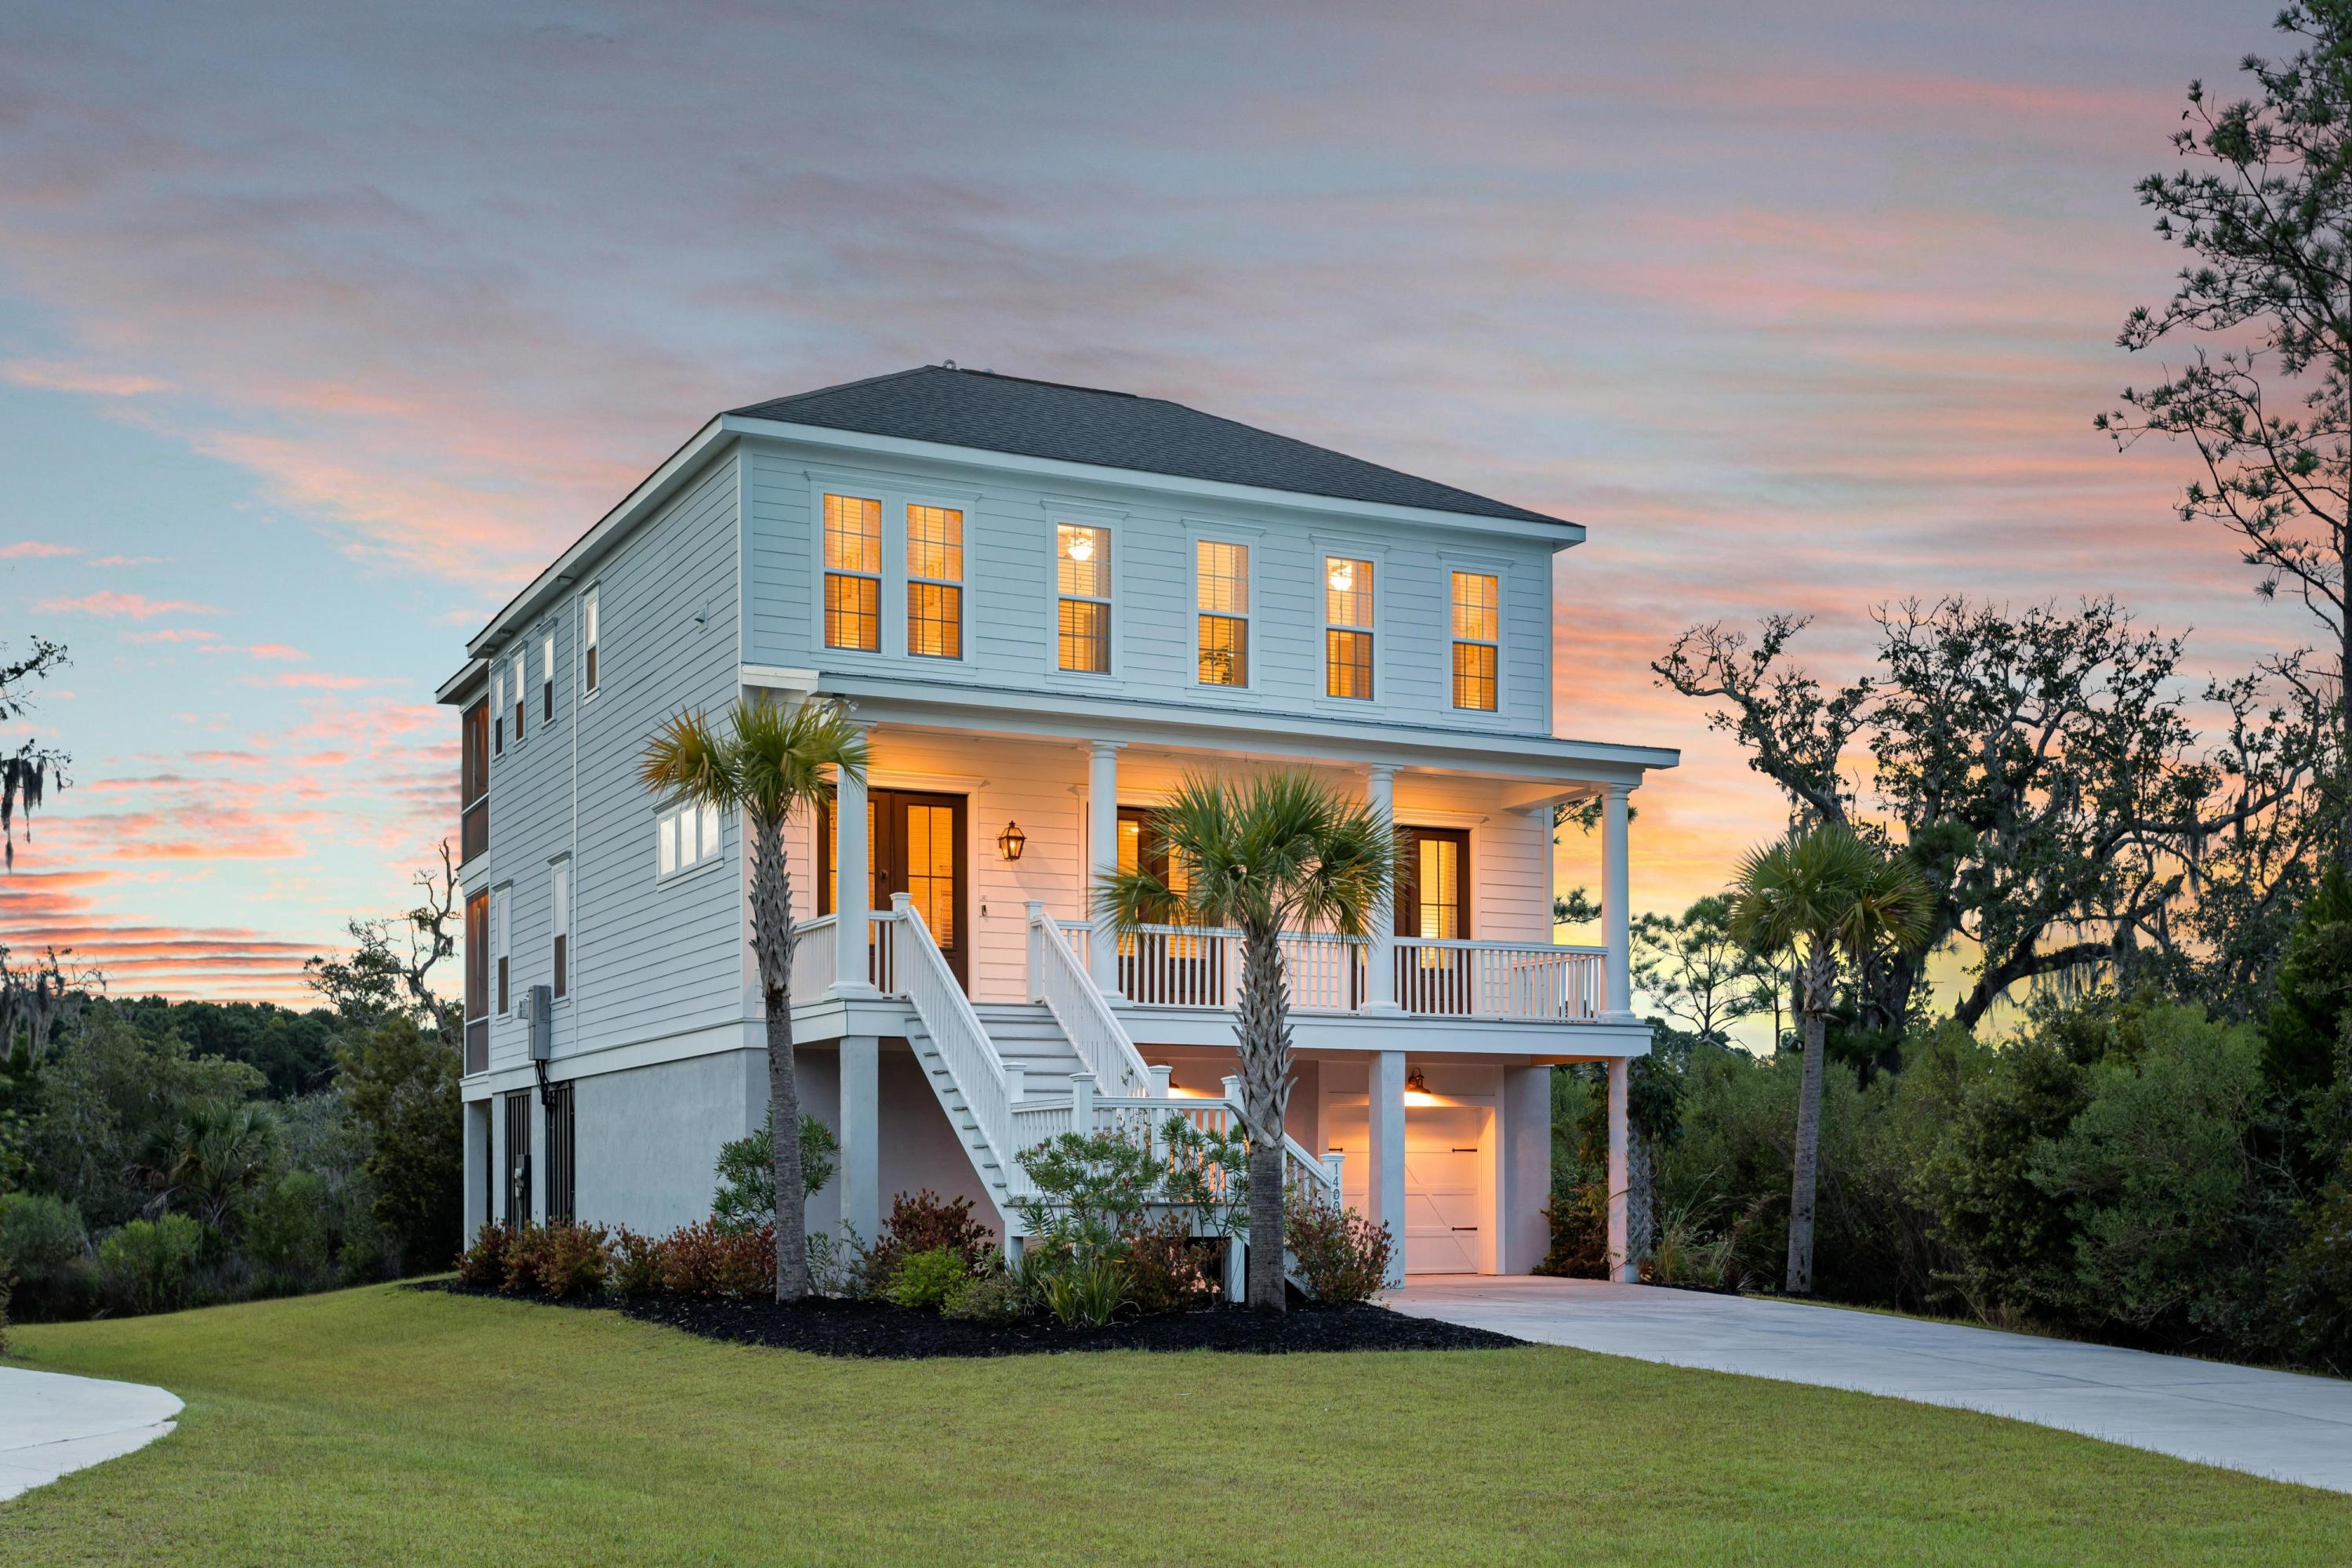 Stratton by the Sound Homes For Sale - 1400 Stratton, Mount Pleasant, SC - 50